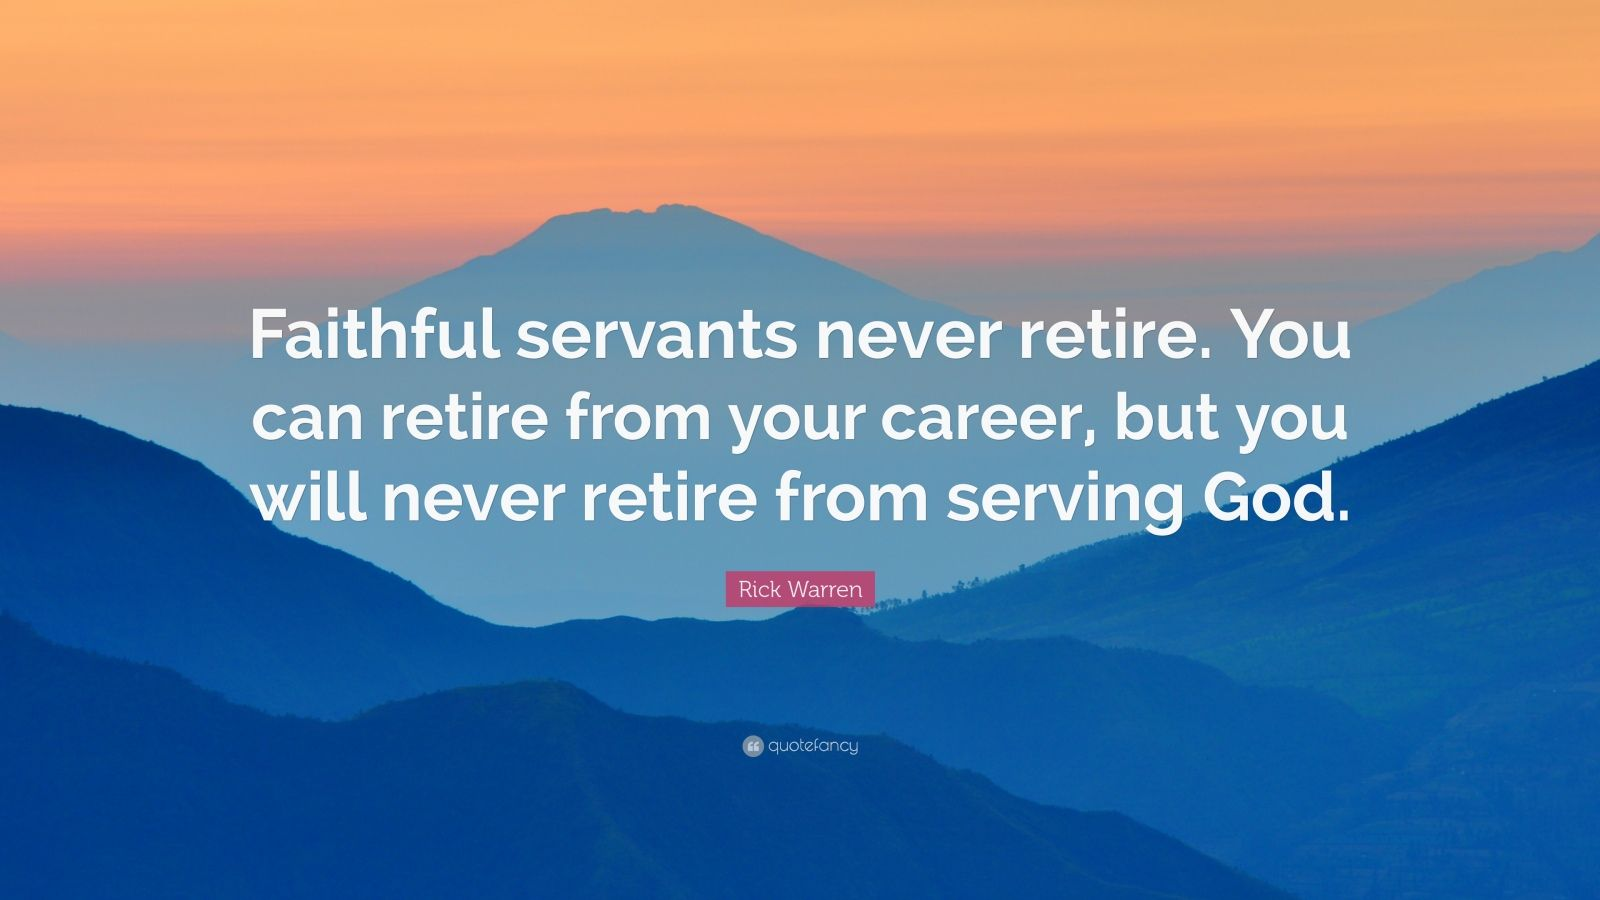 """Rick Warren Quote: """"Faithful servants never retire. You can retire from your career, but you will never retire from serving God."""""""